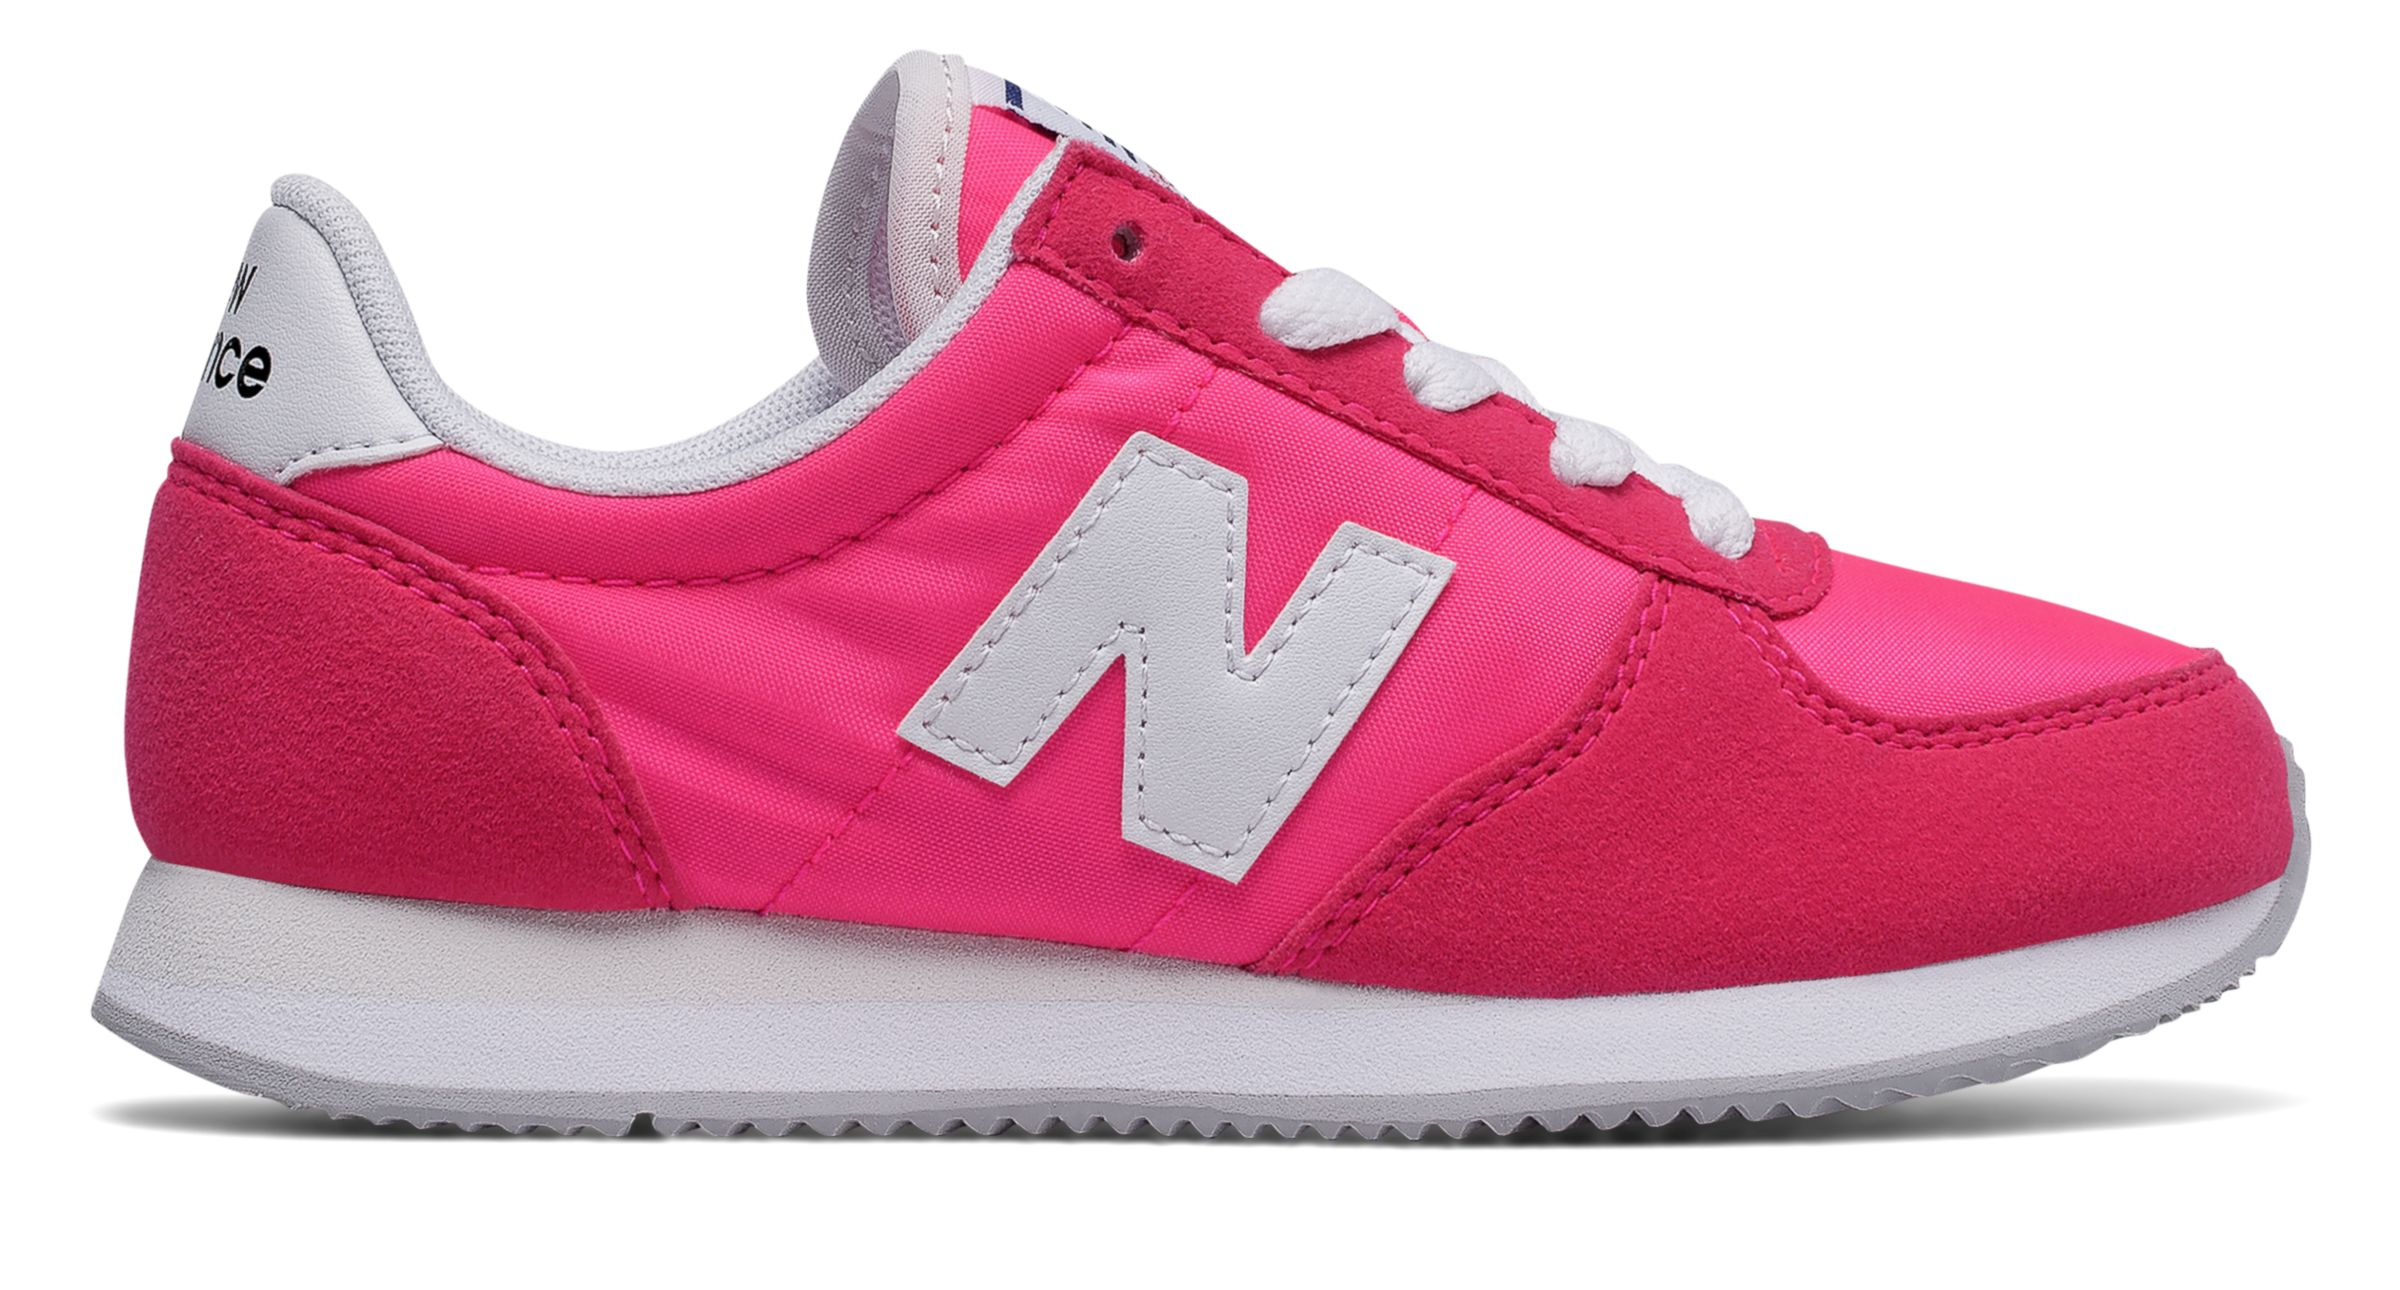 NB 220 New Balance, Pink with White